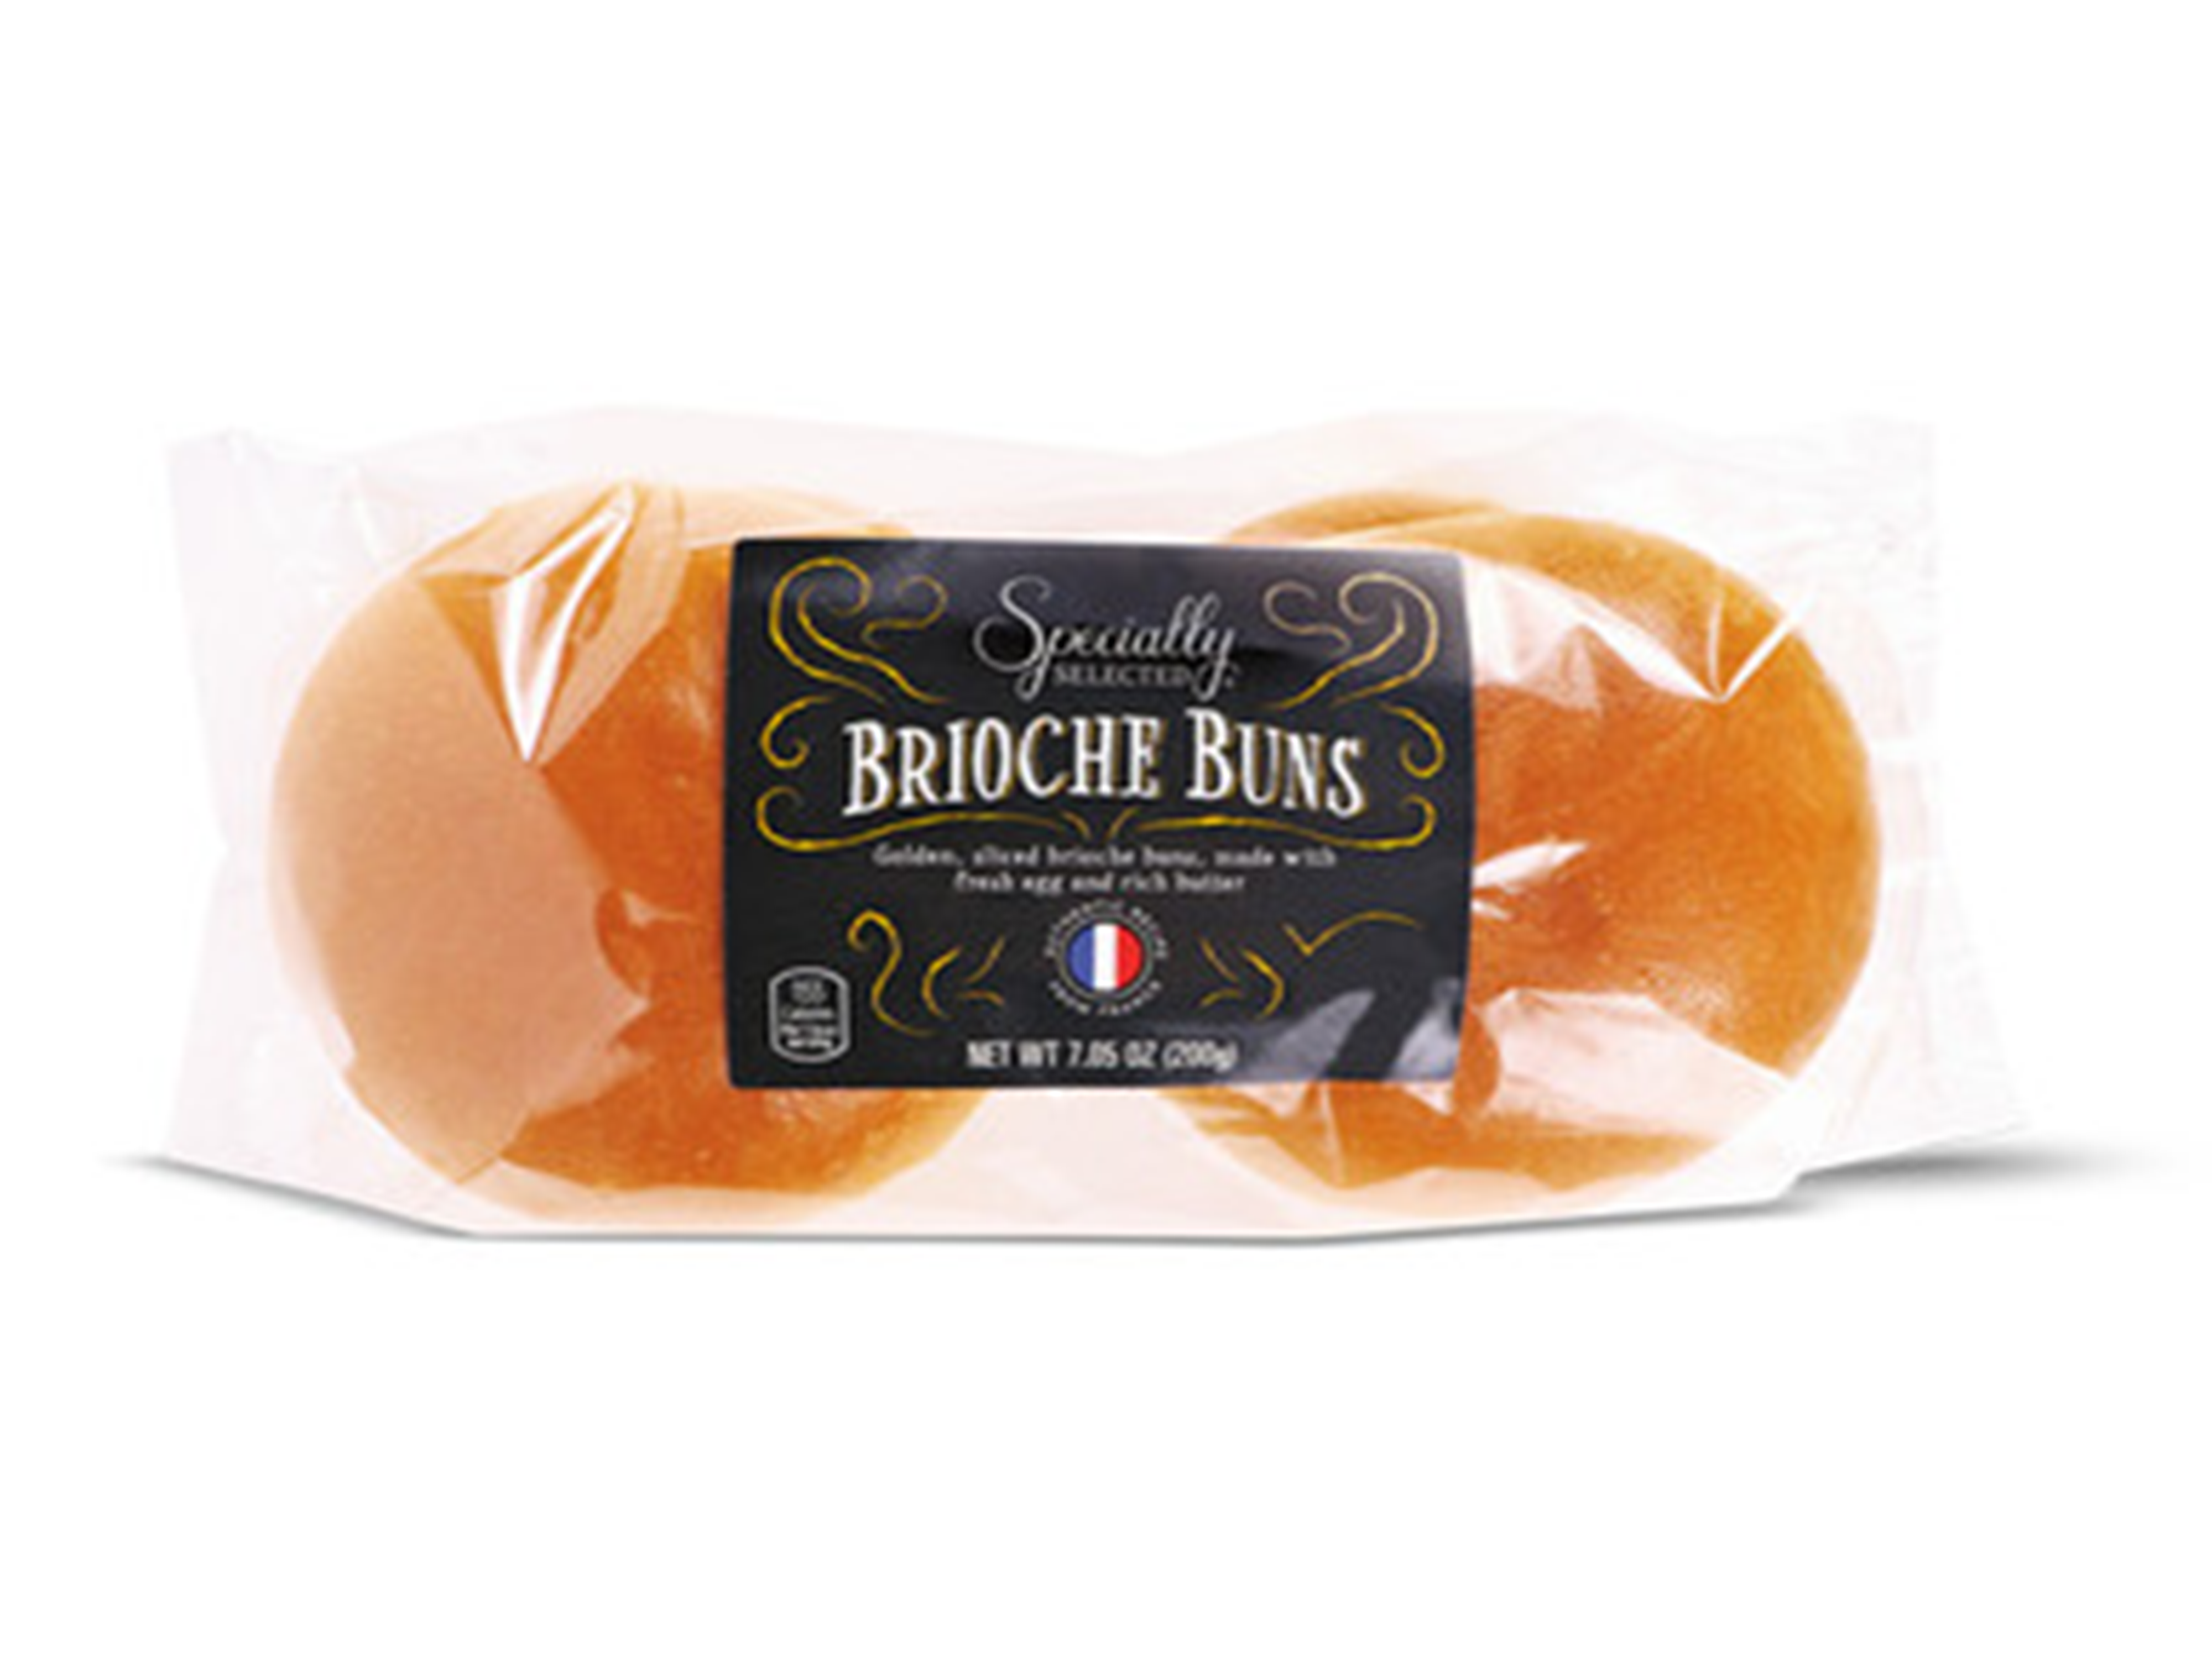 Favorite Bread or Baked Good: Specially Selected Brioche Buns